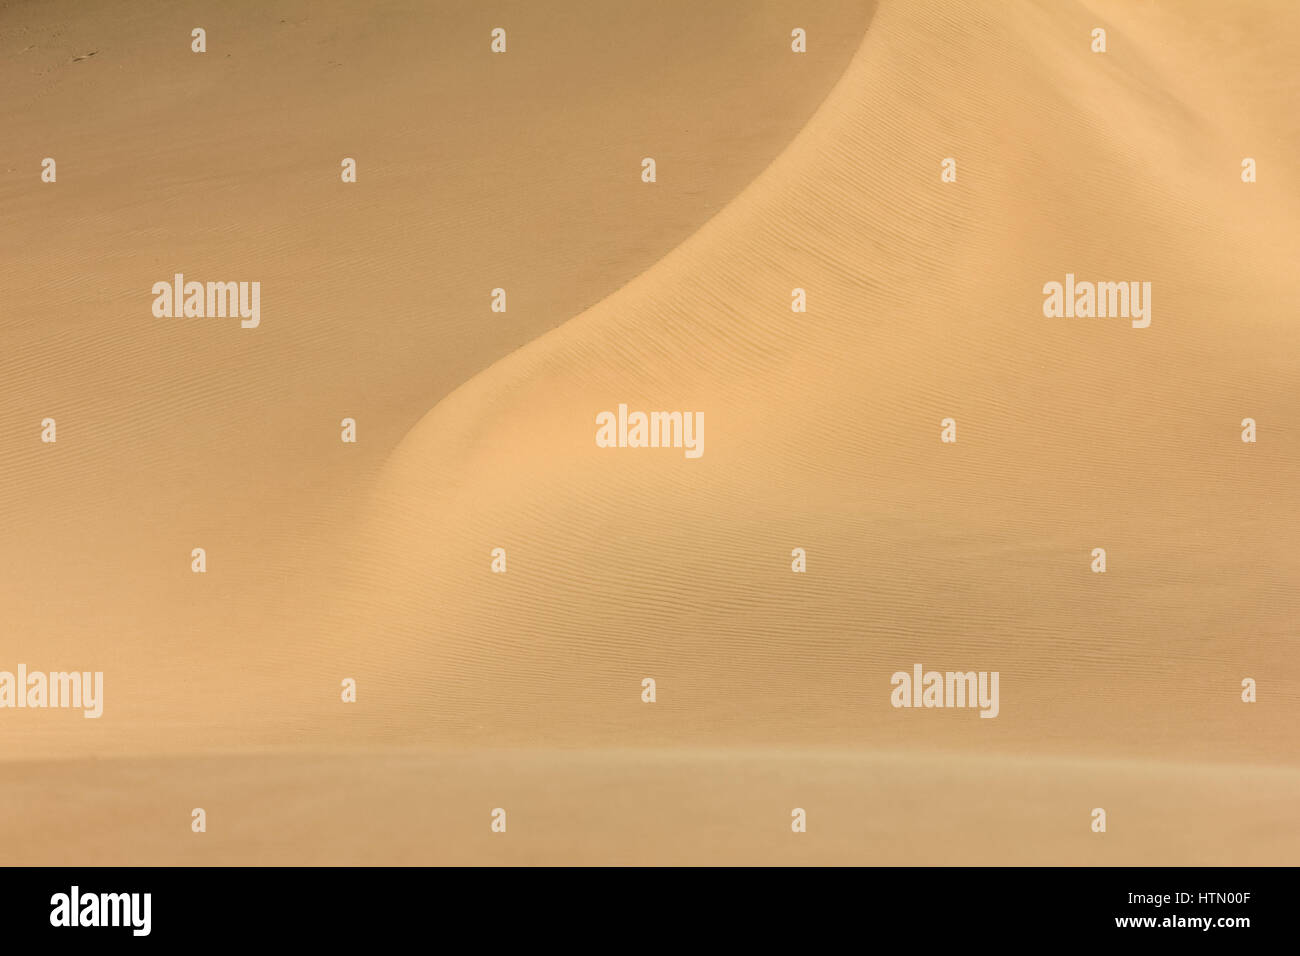 Shifting sand dune contrasts. Desert or beach sand textured background. - Stock Image